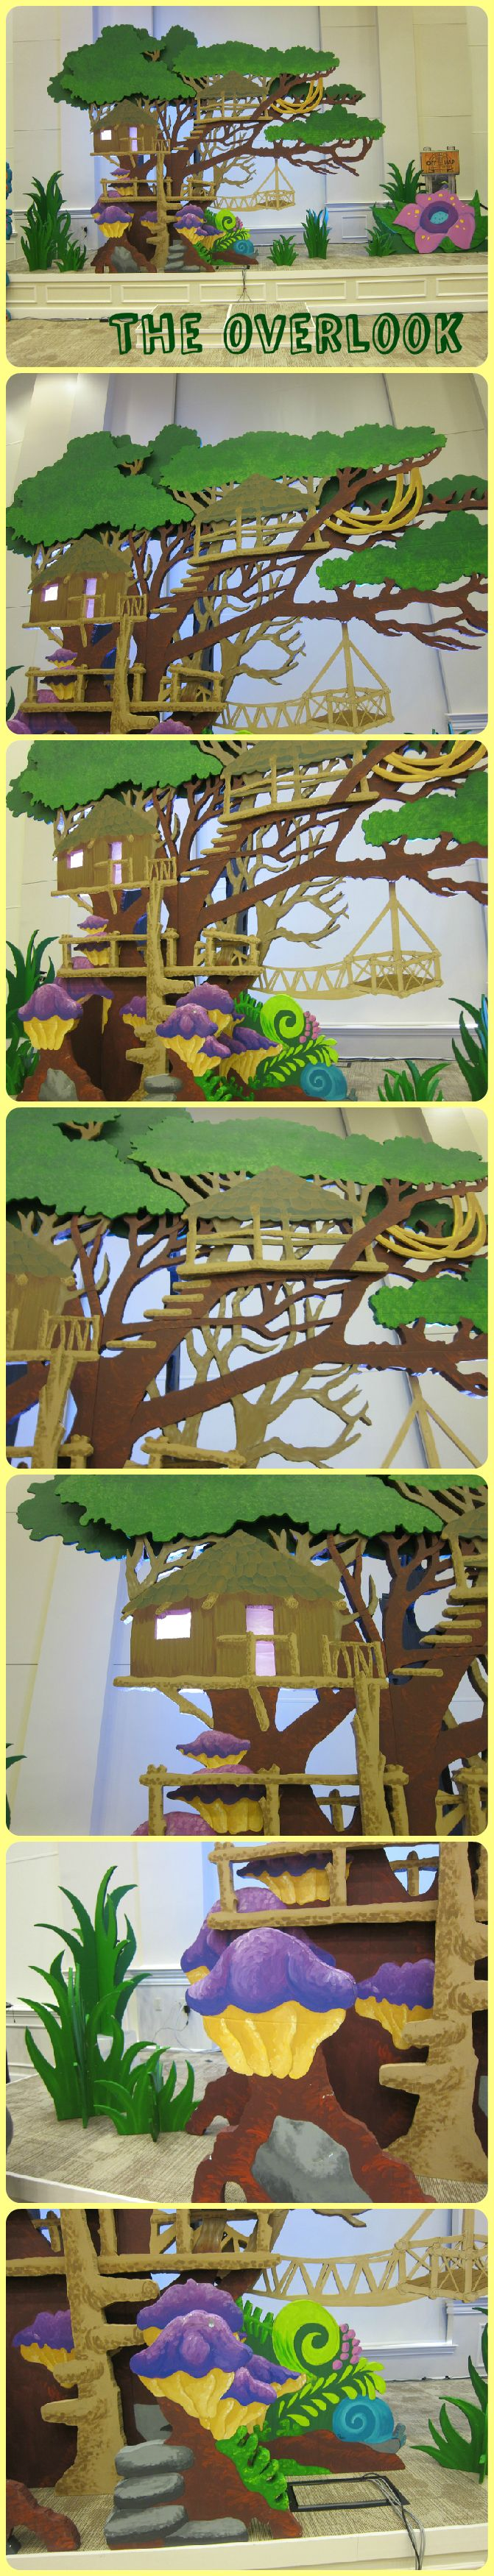 Survival Springs backdrop from several angles includes